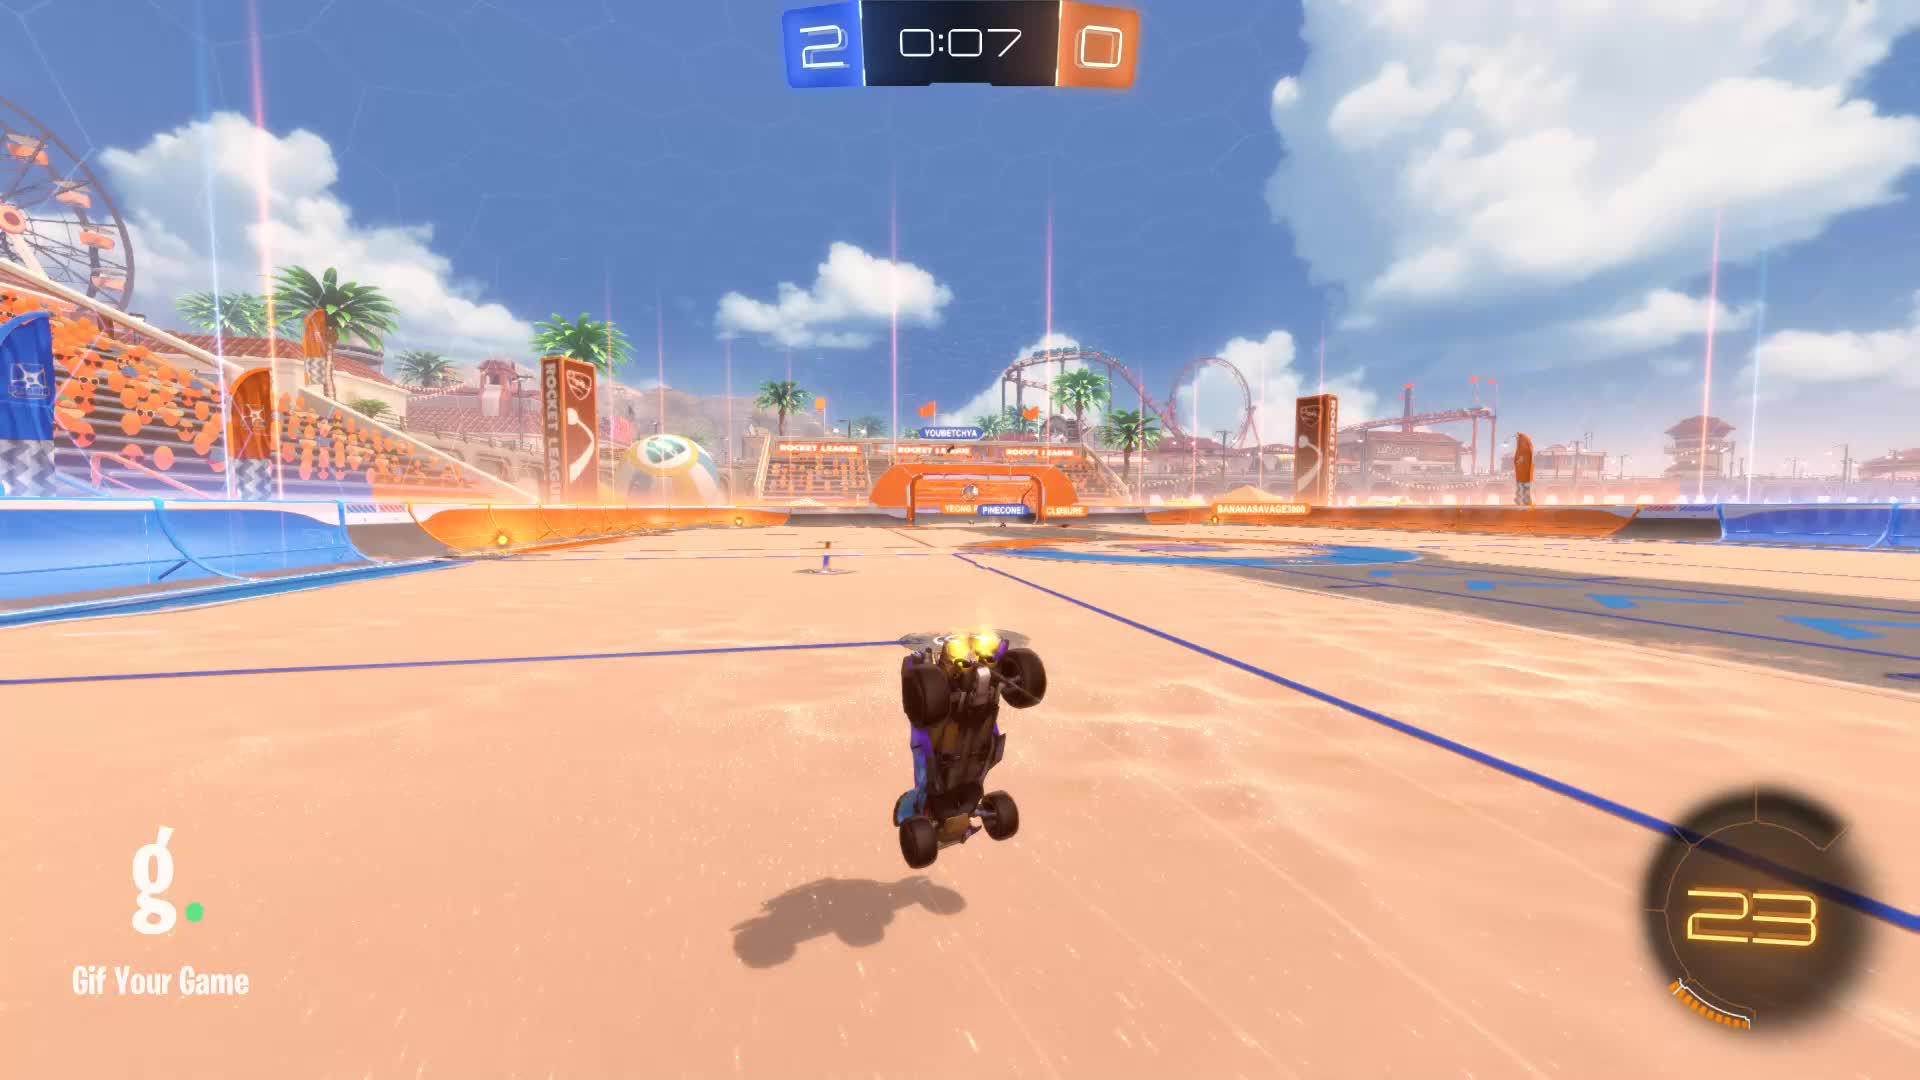 DOTY, Gif Your Game, GifYourGame, Rocket League, RocketLeague, Demo 2: Yeong RaZeR GIFs